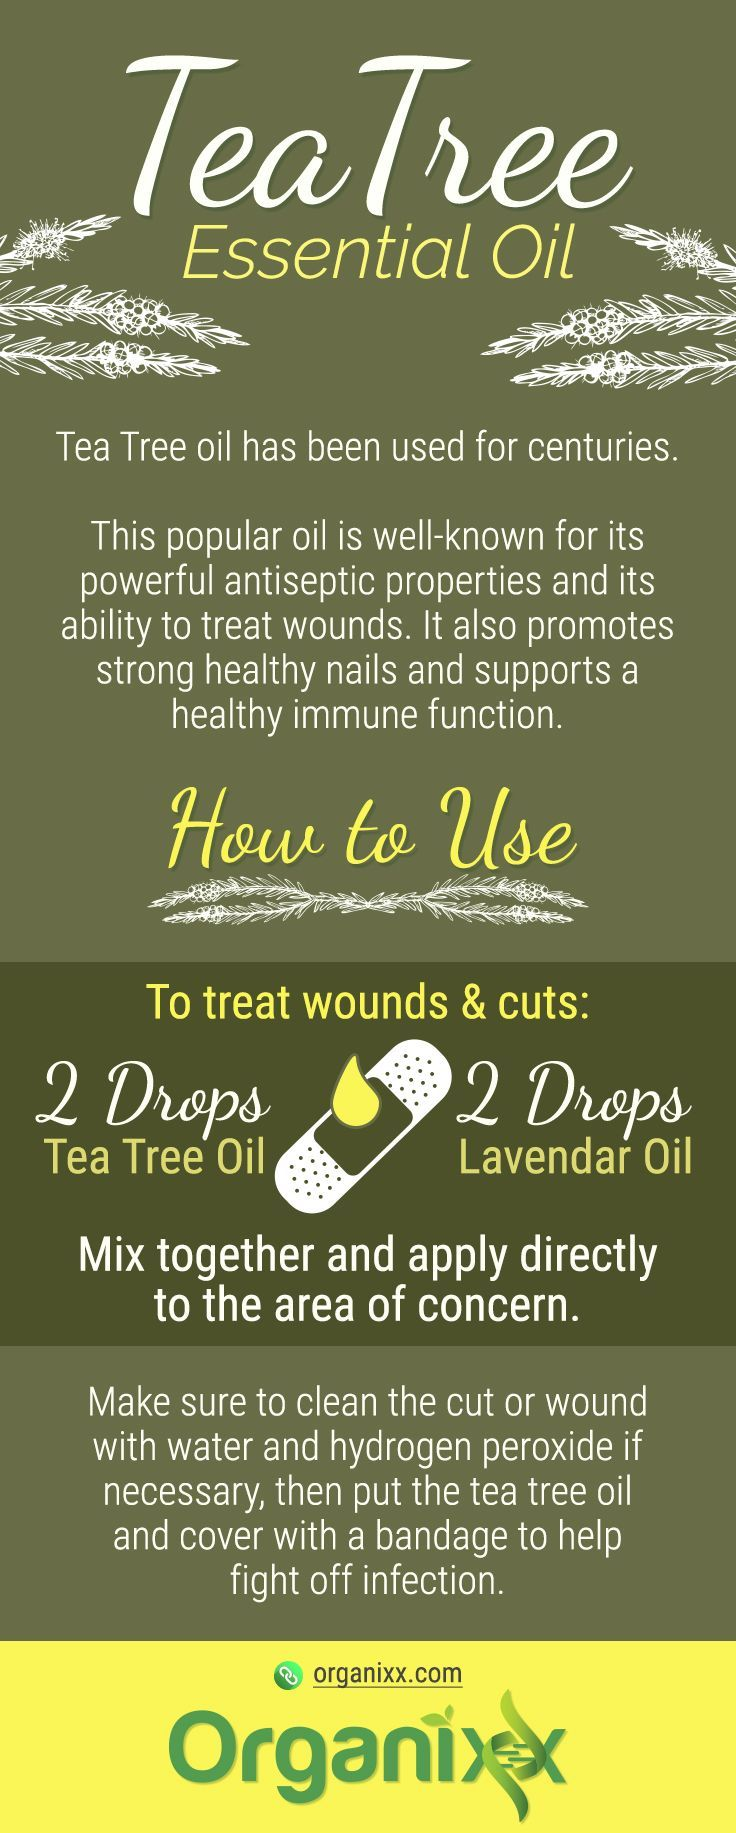 TEA TREE ESSENTIAL OIL: Tea Tree Oil is great to treat wounds & cut. Just mix 2 drops of tea tree oil together with 2 drops of lavender essential oil and apply on the area of concern.